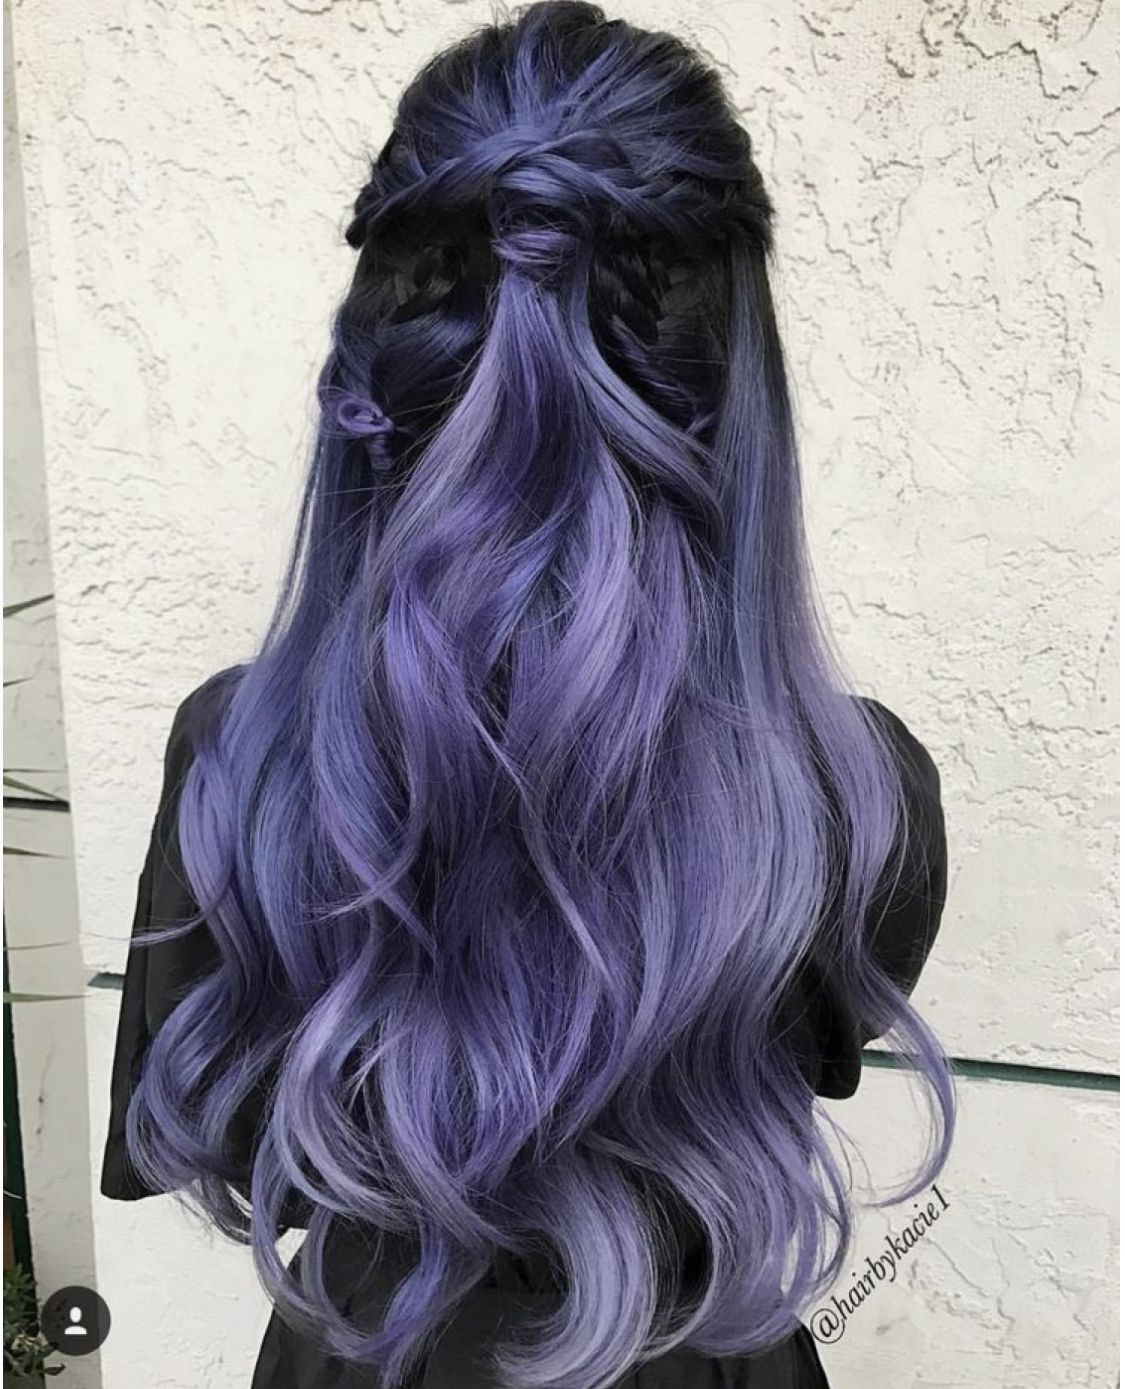 Lavender Wig Lace Front Long Wavy With Ombre For Women Anime Cosplay Halloween Party Everyday Wigs 24 In 2020 Fall Hair Color Trends Blue Ombre Hair Hair Color Purple